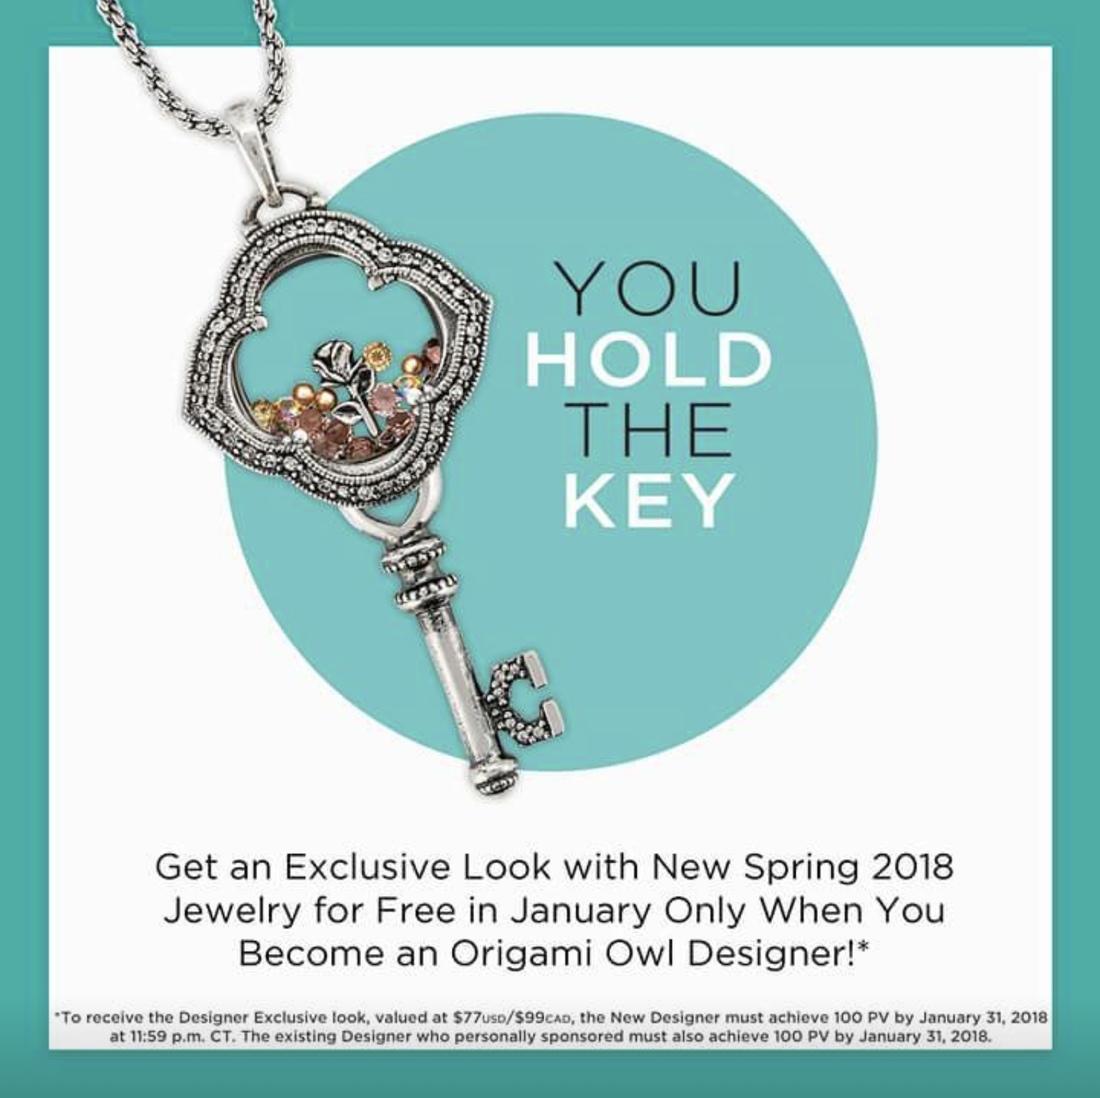 Origami owls spring 2018 collection direct sales member article they started with the january join exclusive which is amazing but thats besides the point it featured the new spring key locket and blush stardust jeuxipadfo Images